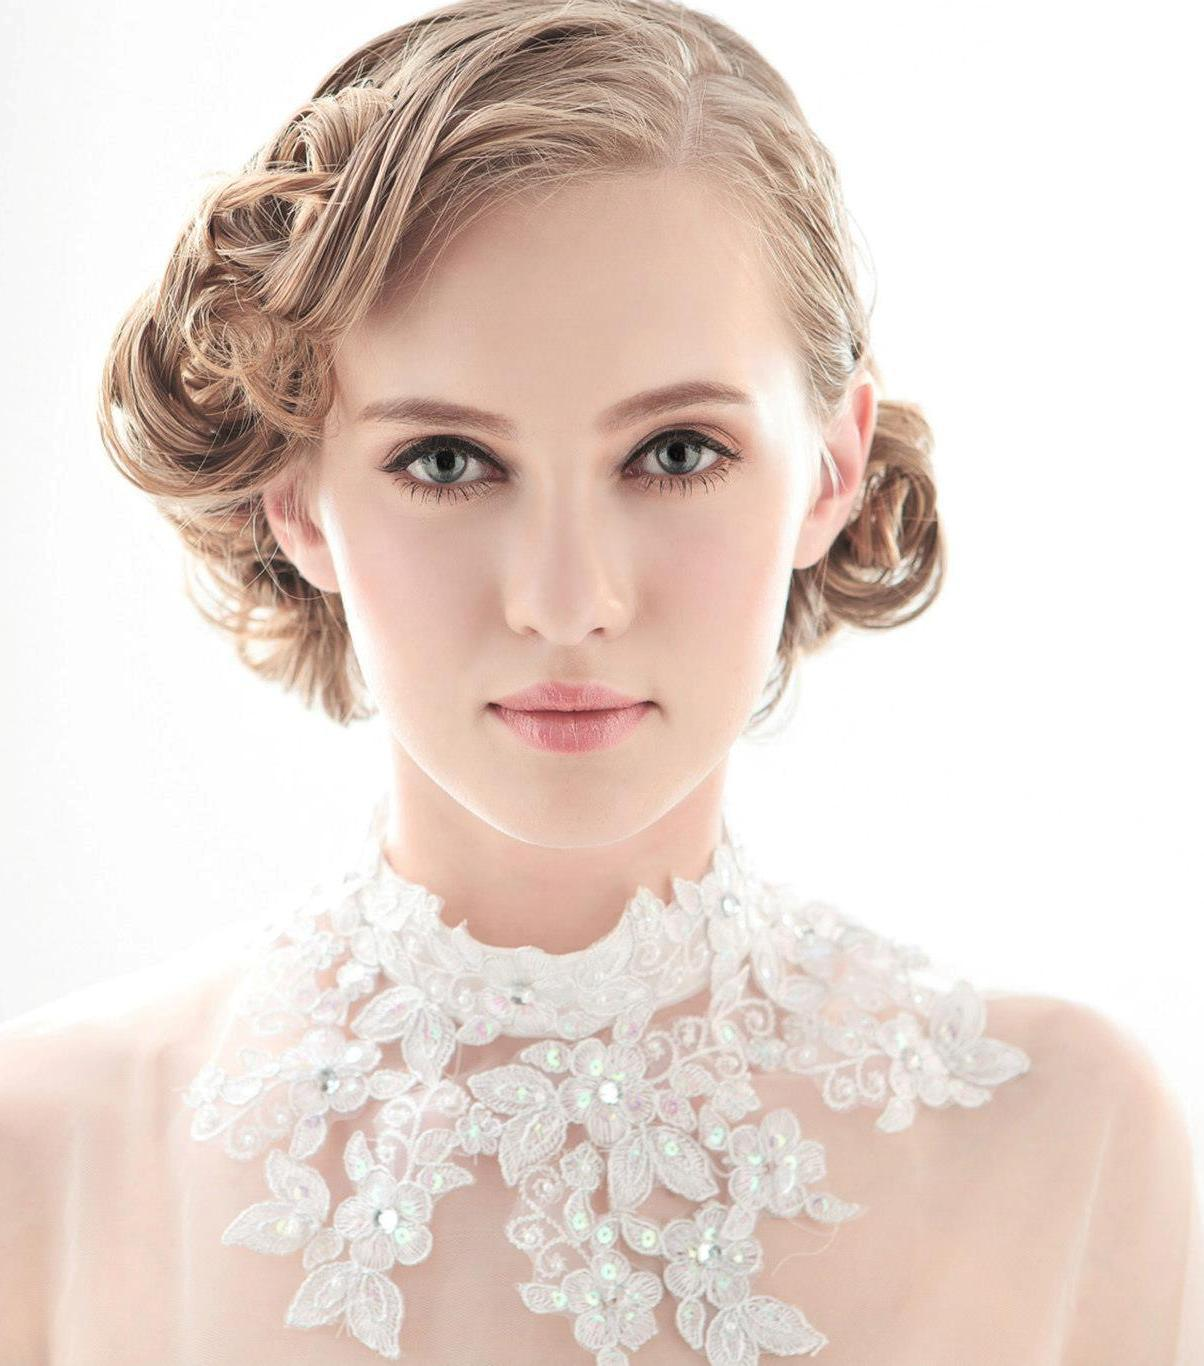 Wedding Hairstyles Bride: Vintage Wedding Hairstyles Images Photos Pictures